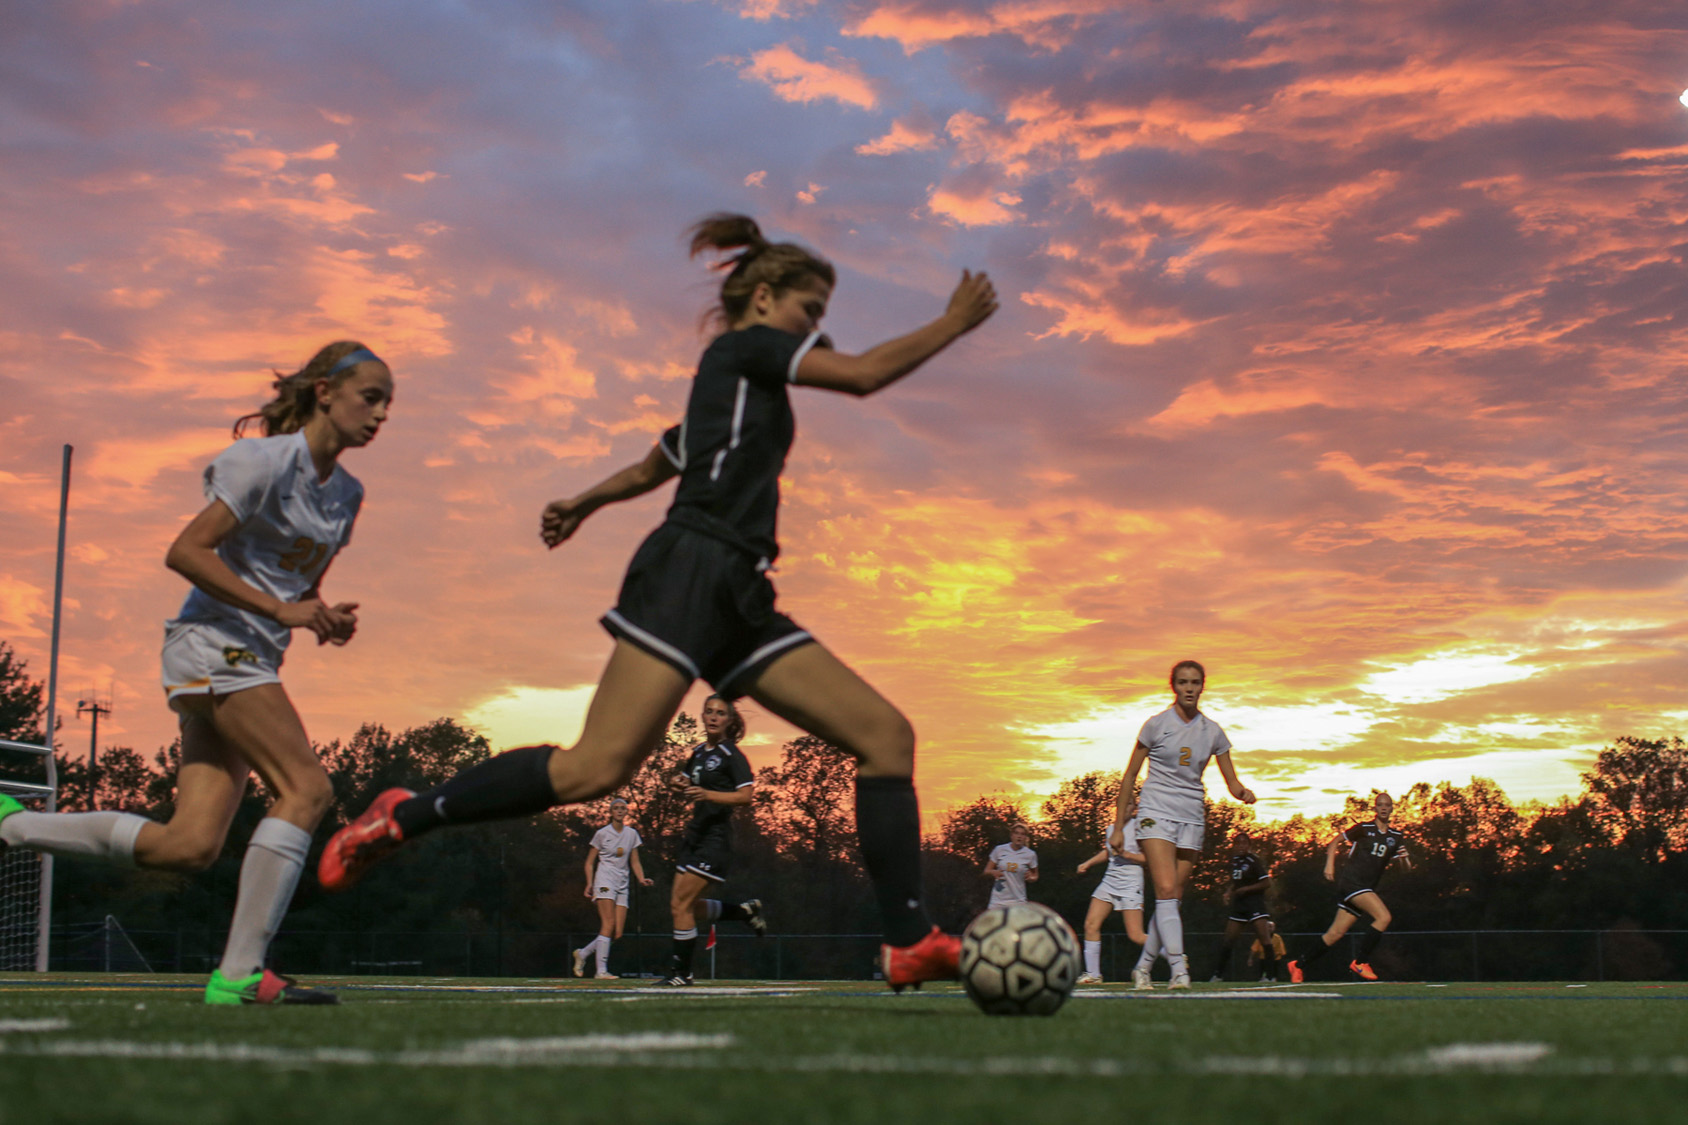 Sports Photography School: Best Of Baltimore-area High School Sports Photos, Week 7